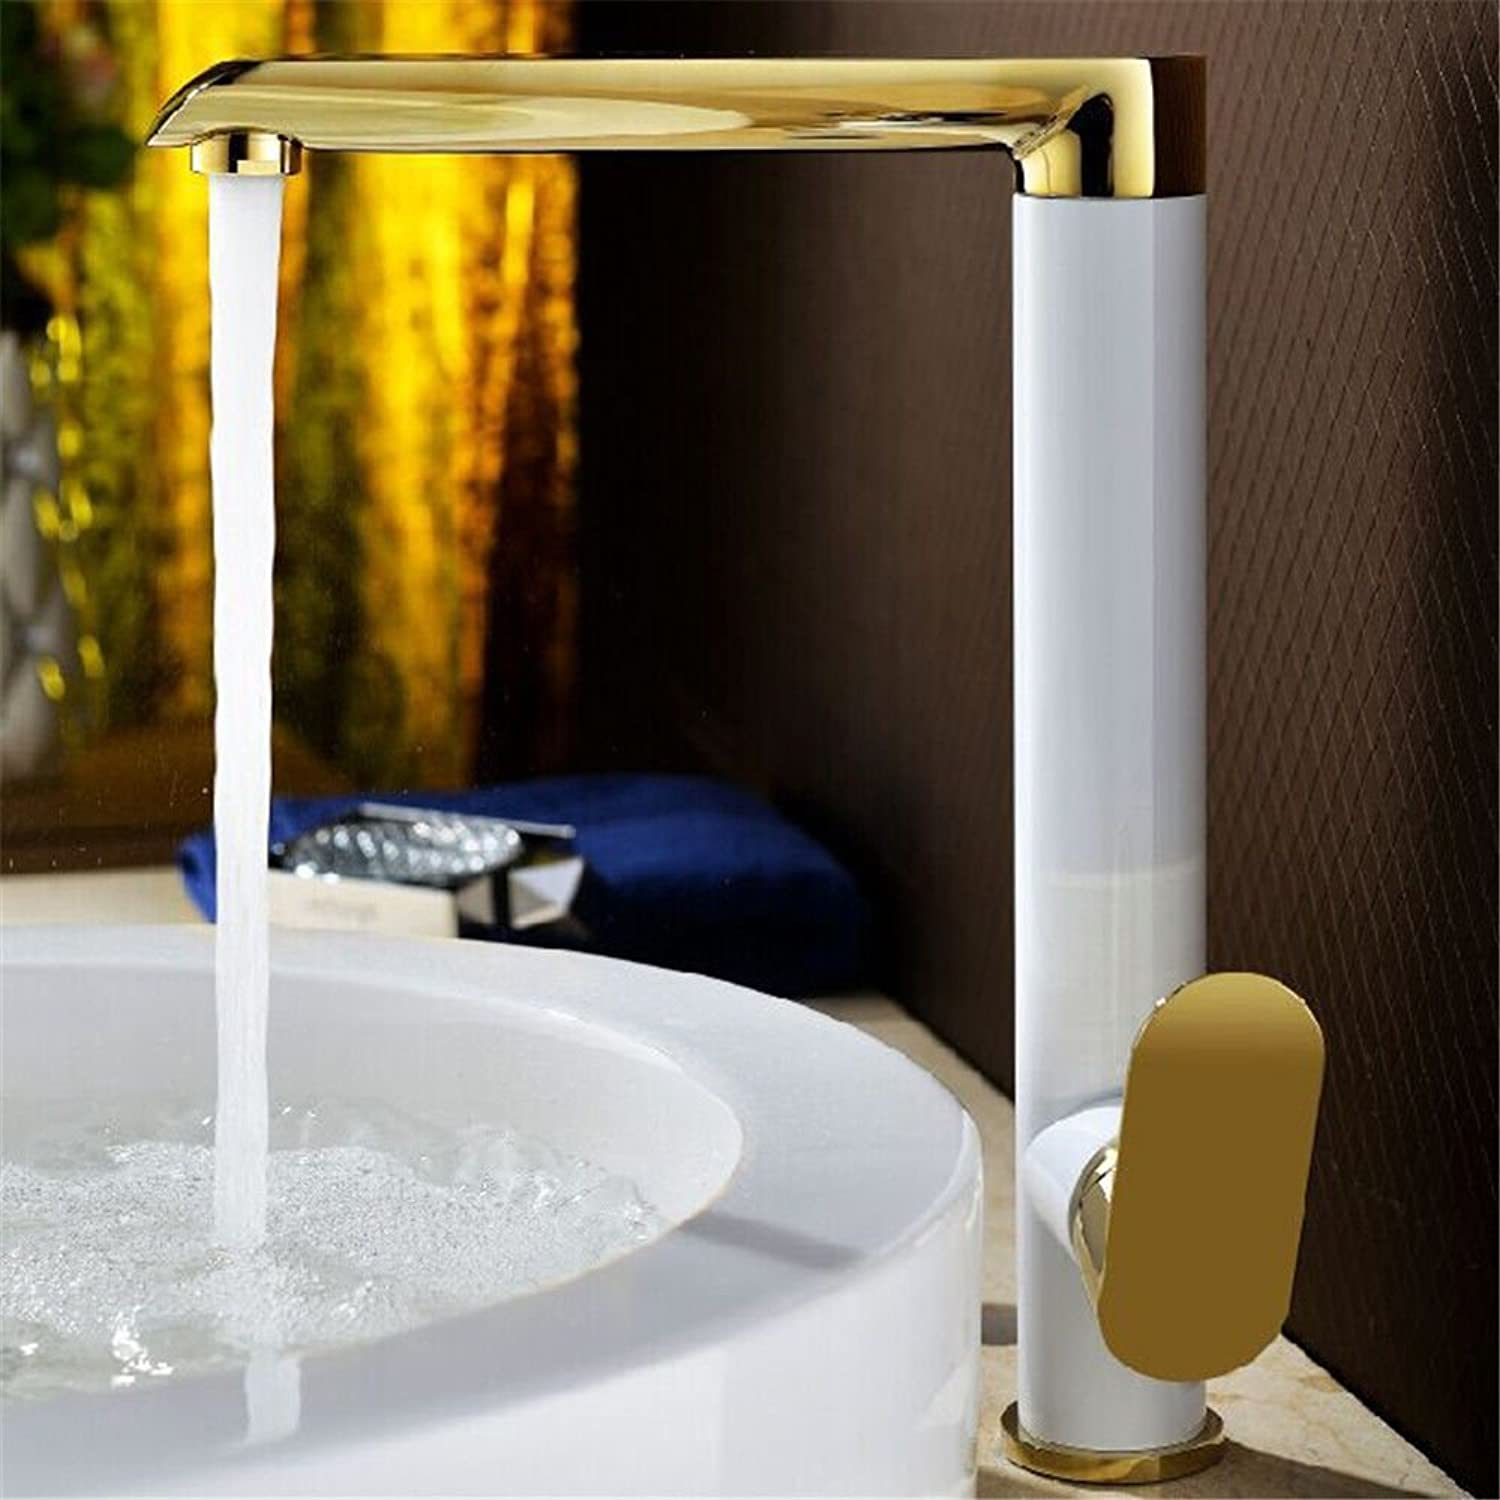 NewBorn Faucet Kitchen Or Bathroom Sink Mixer Tap Single Handle Water Tap Full Copper Mixing Valve Water Wash Dish Tub Water Tap 360° redatable B